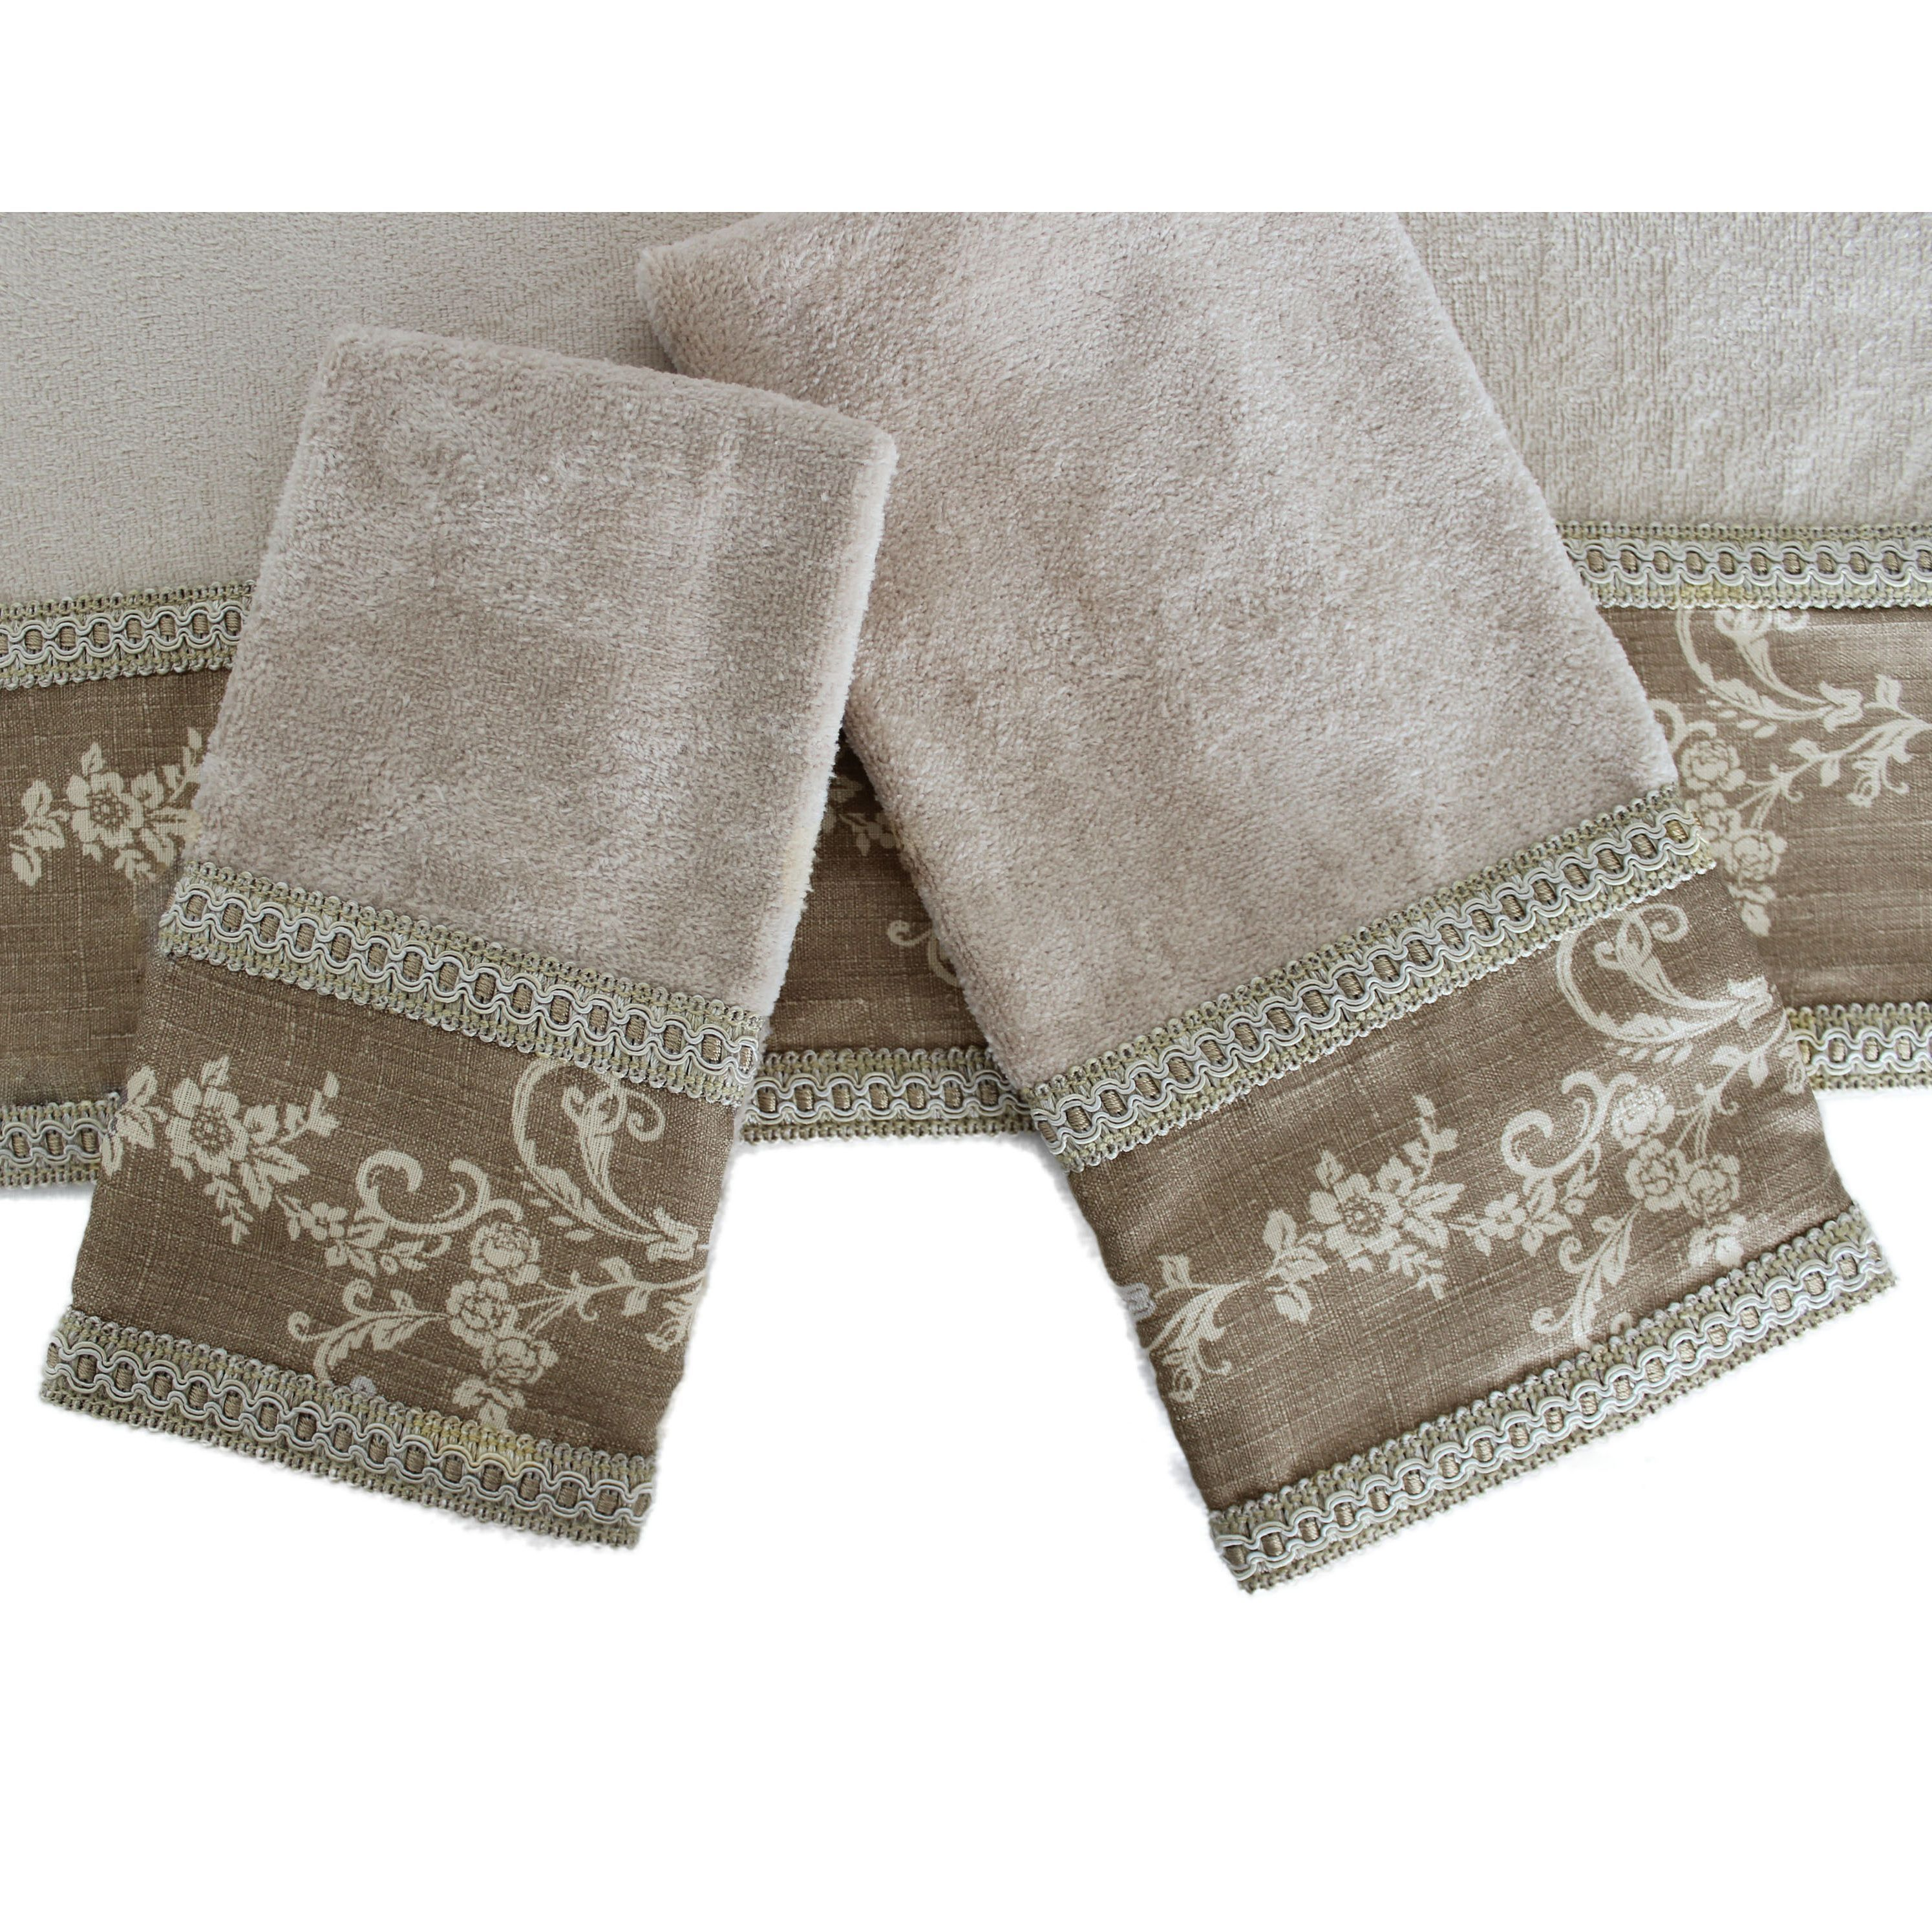 Decorative Bath Towel Sets Mesmerizing Add A Touch Of Elegance To Your Bathroom With This Threepiece